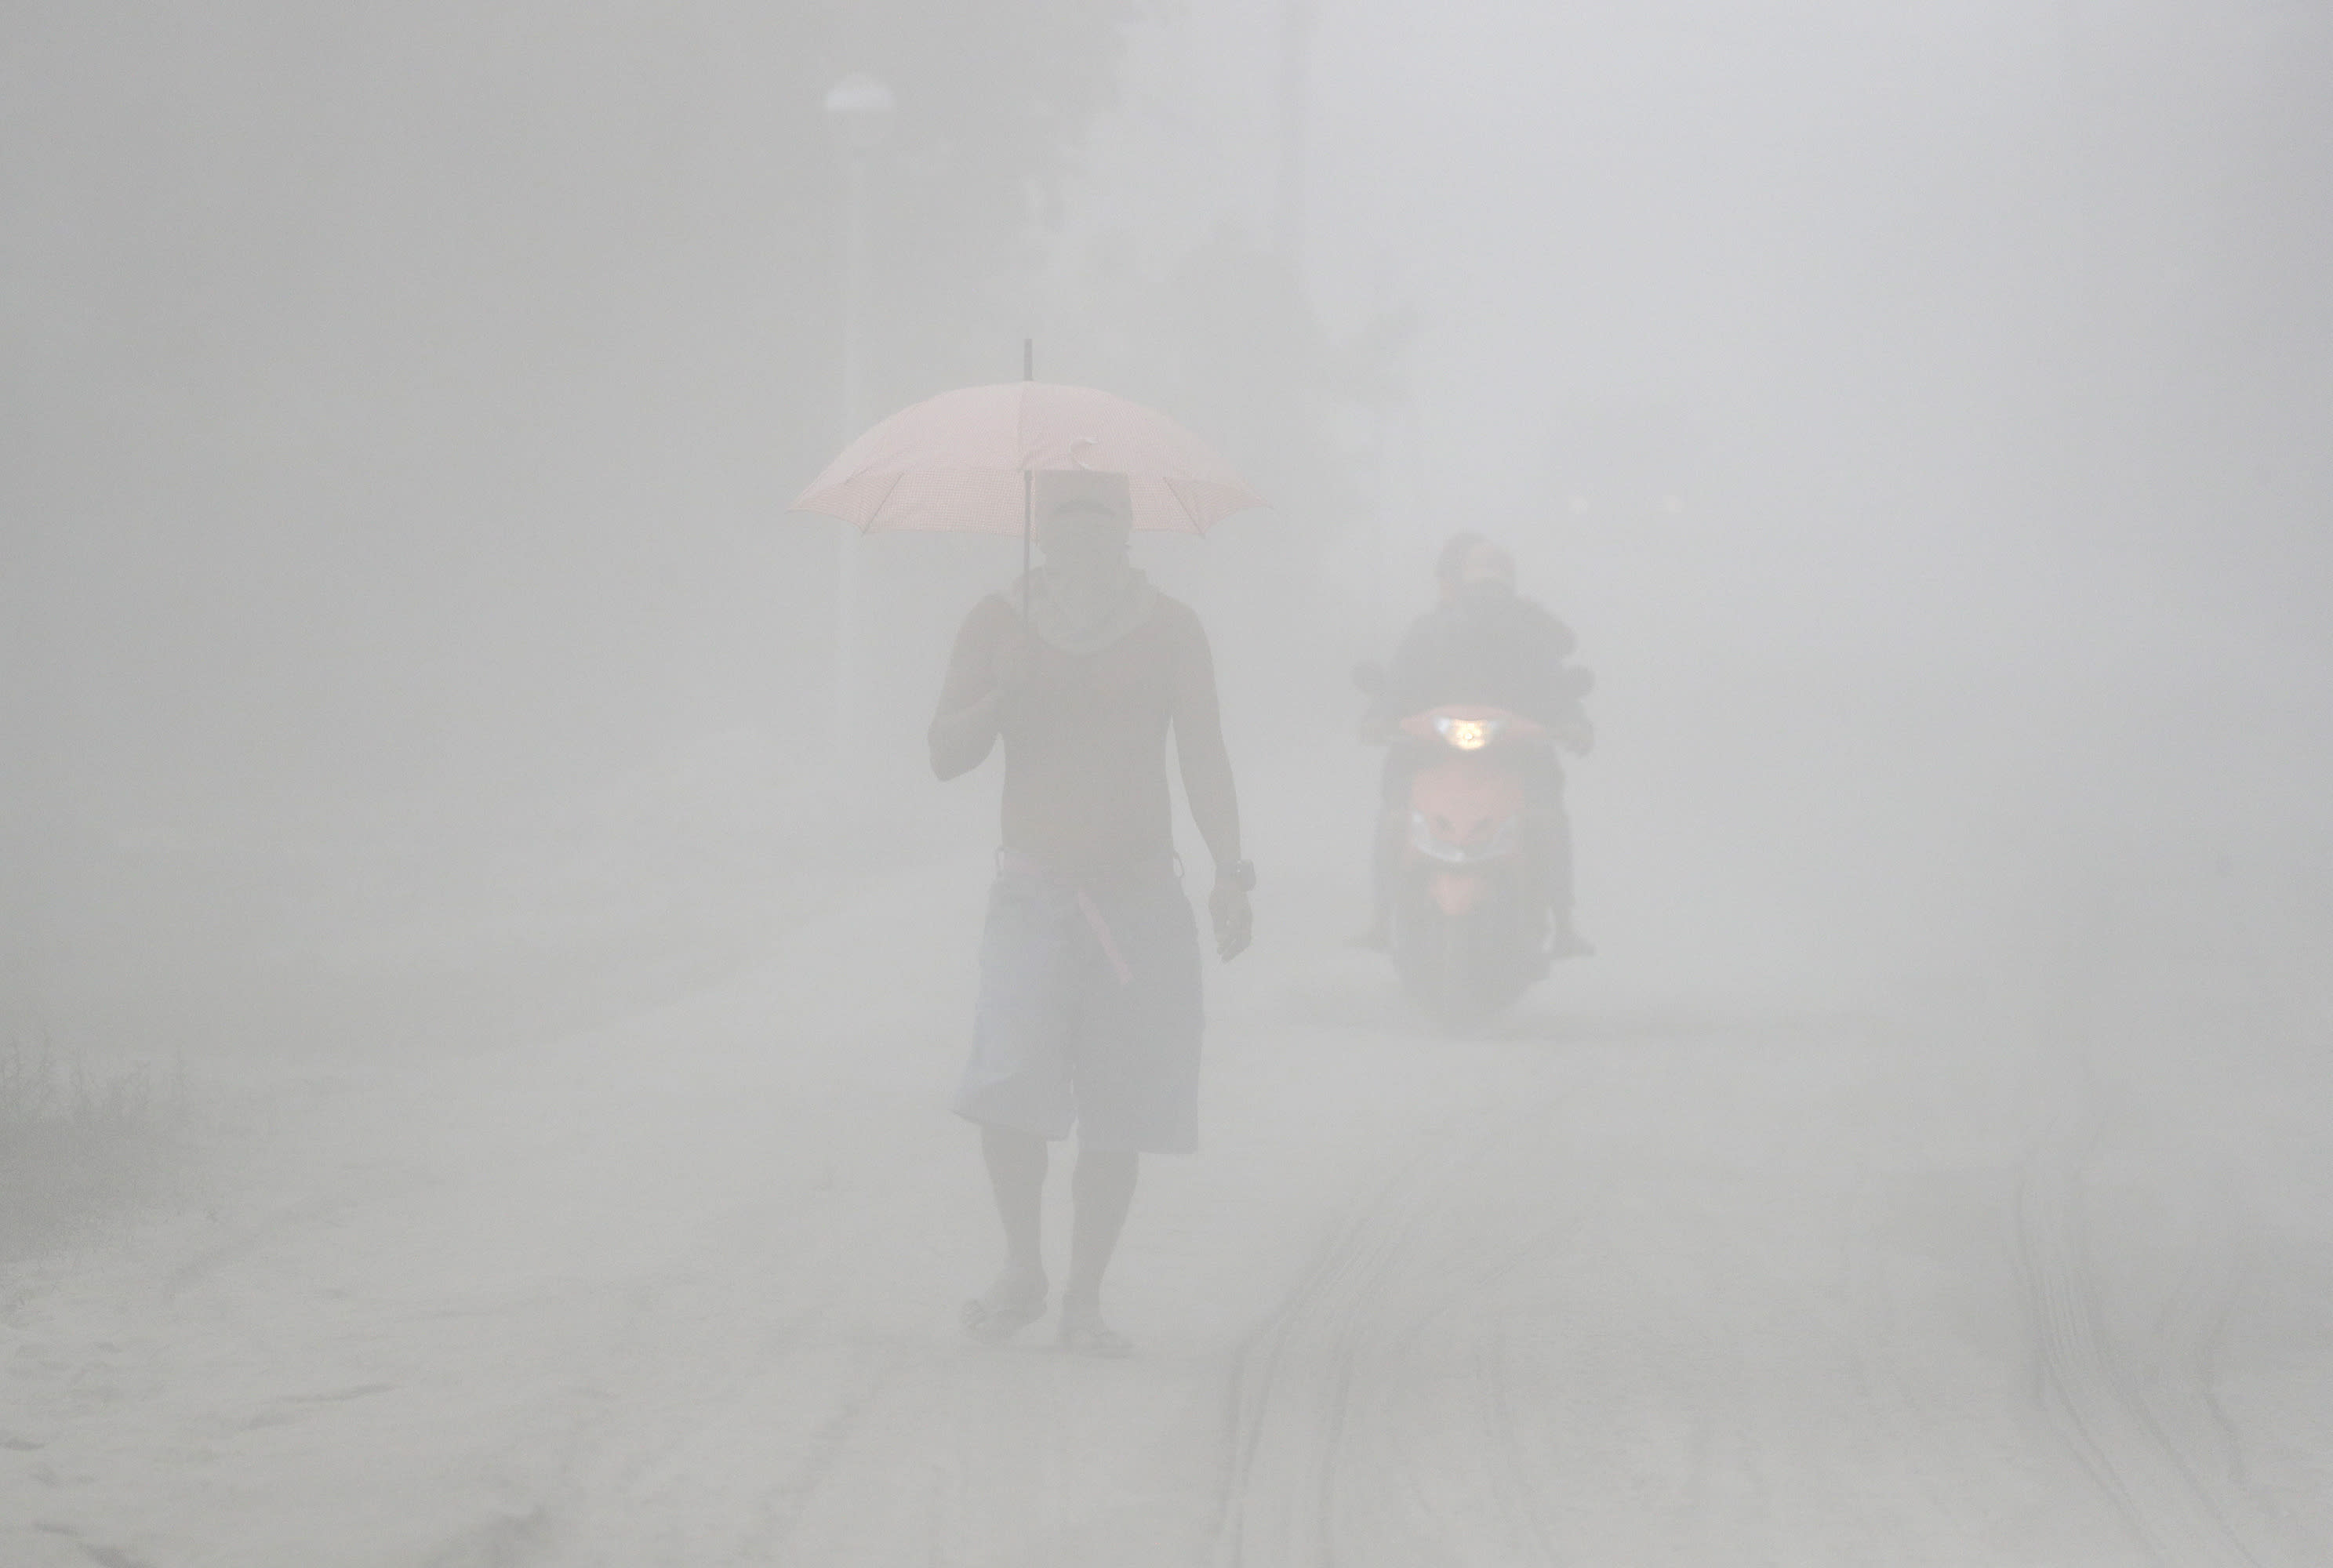 A man walks through a cloud of volcanic ash as he evacuates to safer grounds as Taal volcano in Tagaytay, Cavite province, southern Philippines on Monday, Jan. 13, 2020. Red-hot lava is gushing from the volcano after a sudden eruption of ash and steam that forced residents to flee and shut down Manila's airport, offices and schools. (AP Photo/Aaron Favila)